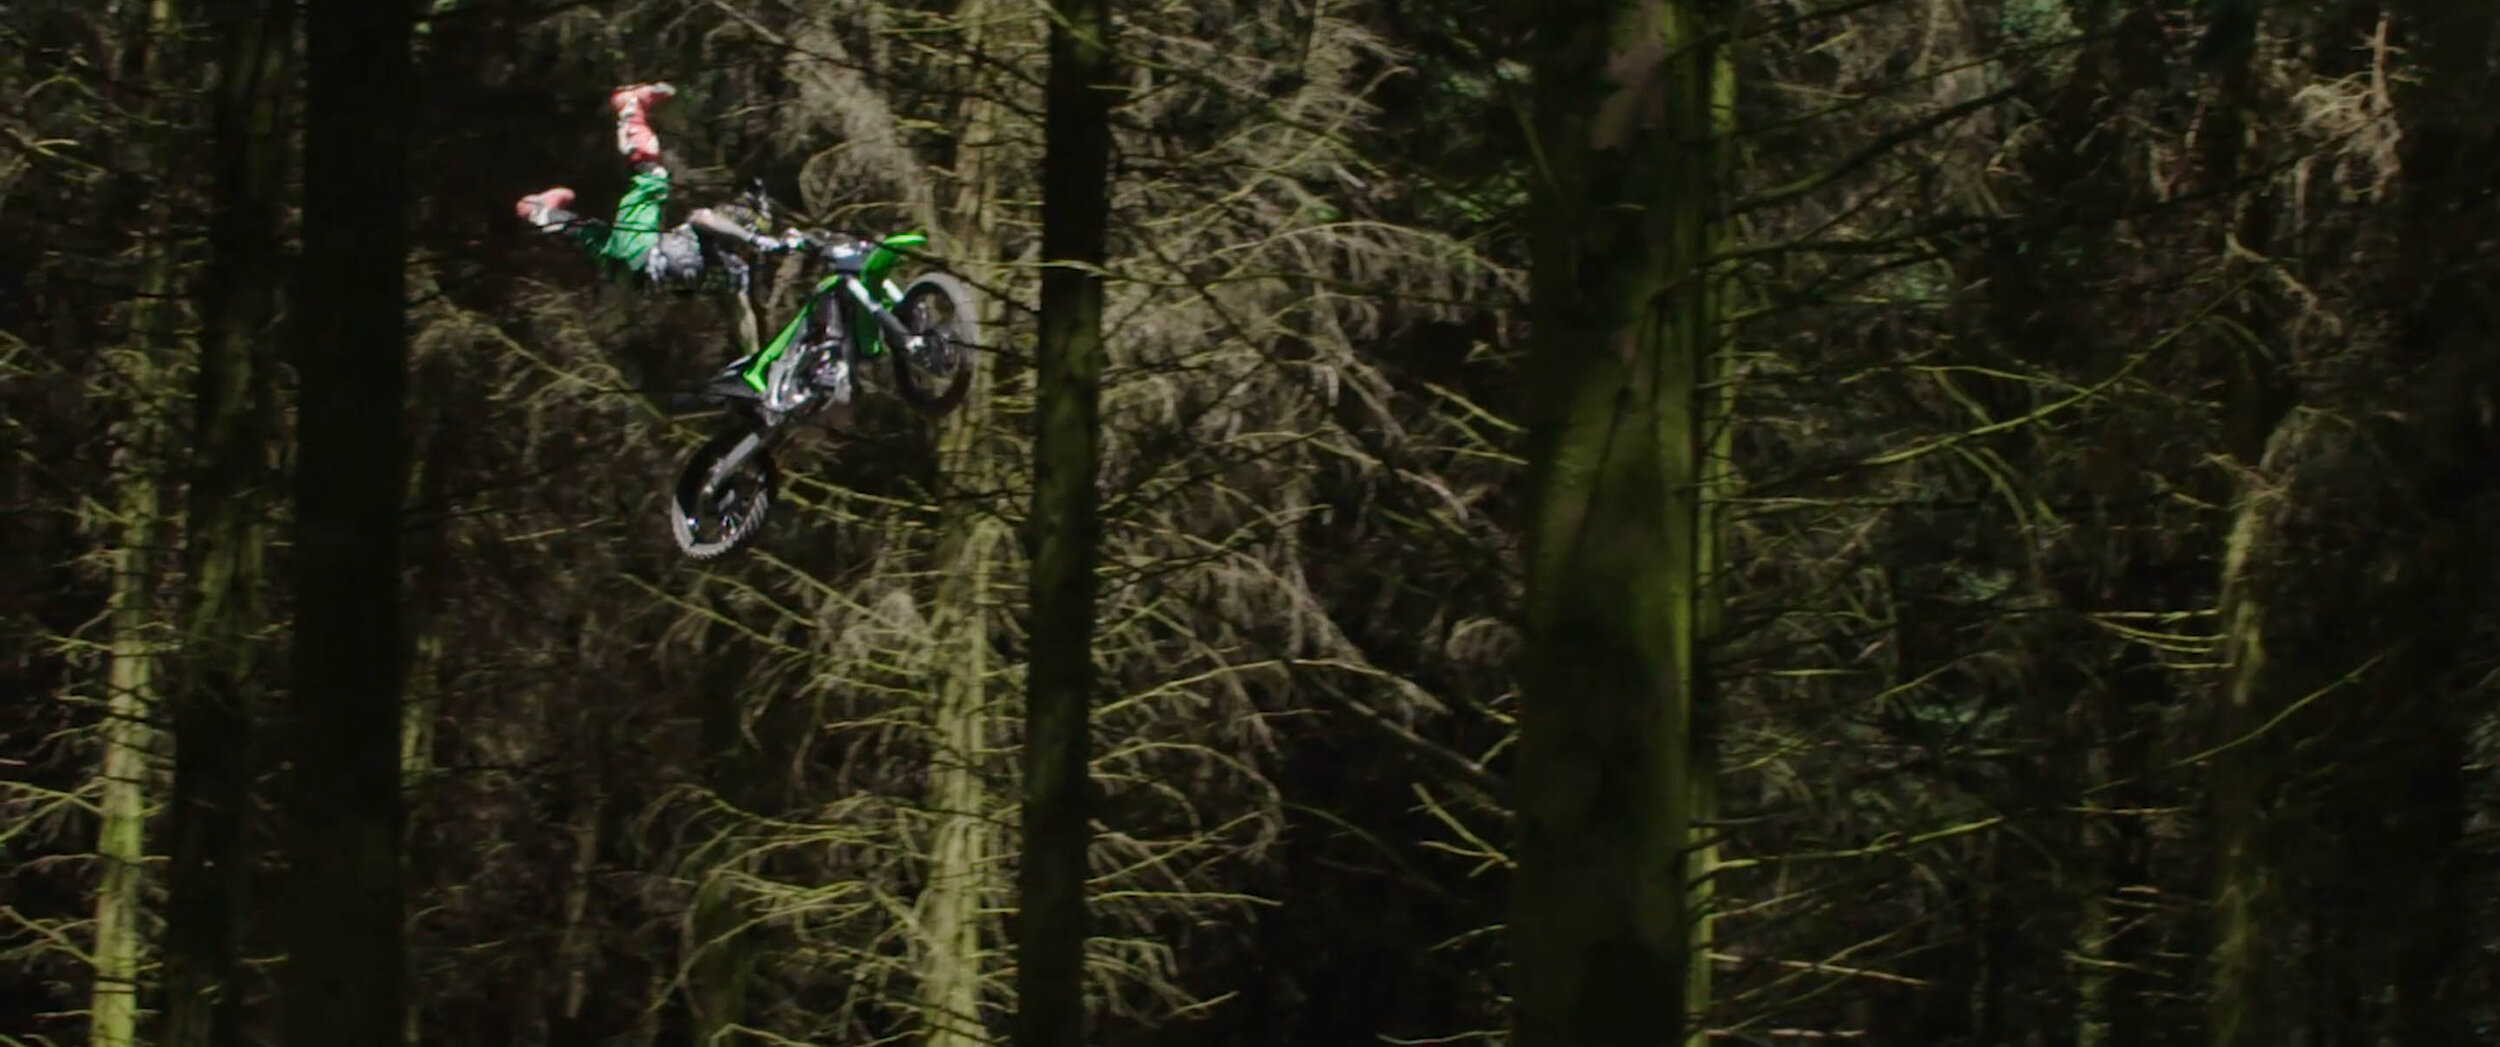 Wayne Jacobs | Freestyle Motocross Athlete Film